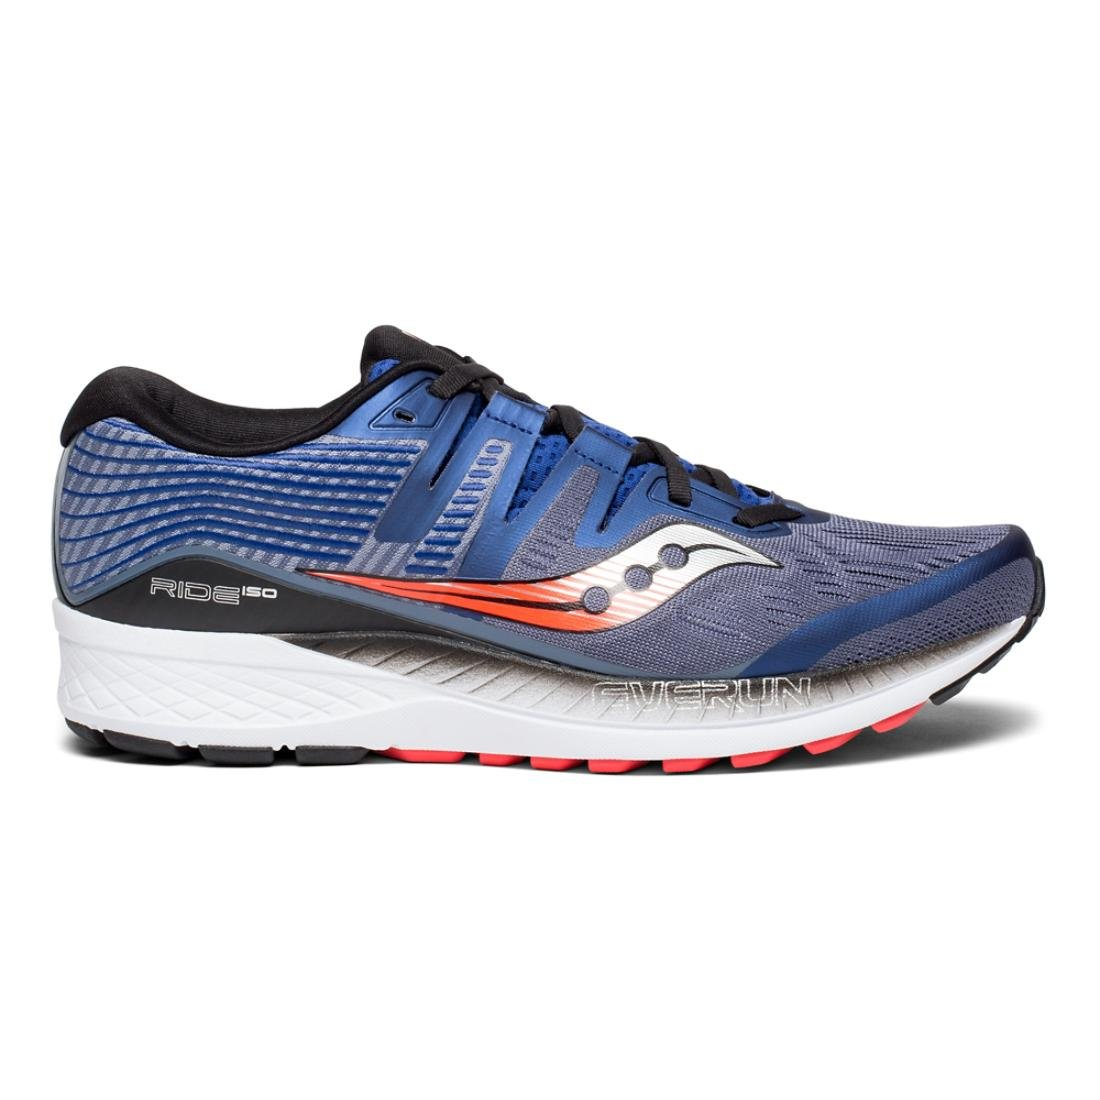 Saucony Men's Ride Iso Running Shoes B078PP8165 7 D(M) US|Grey/Blue/Vizi Red